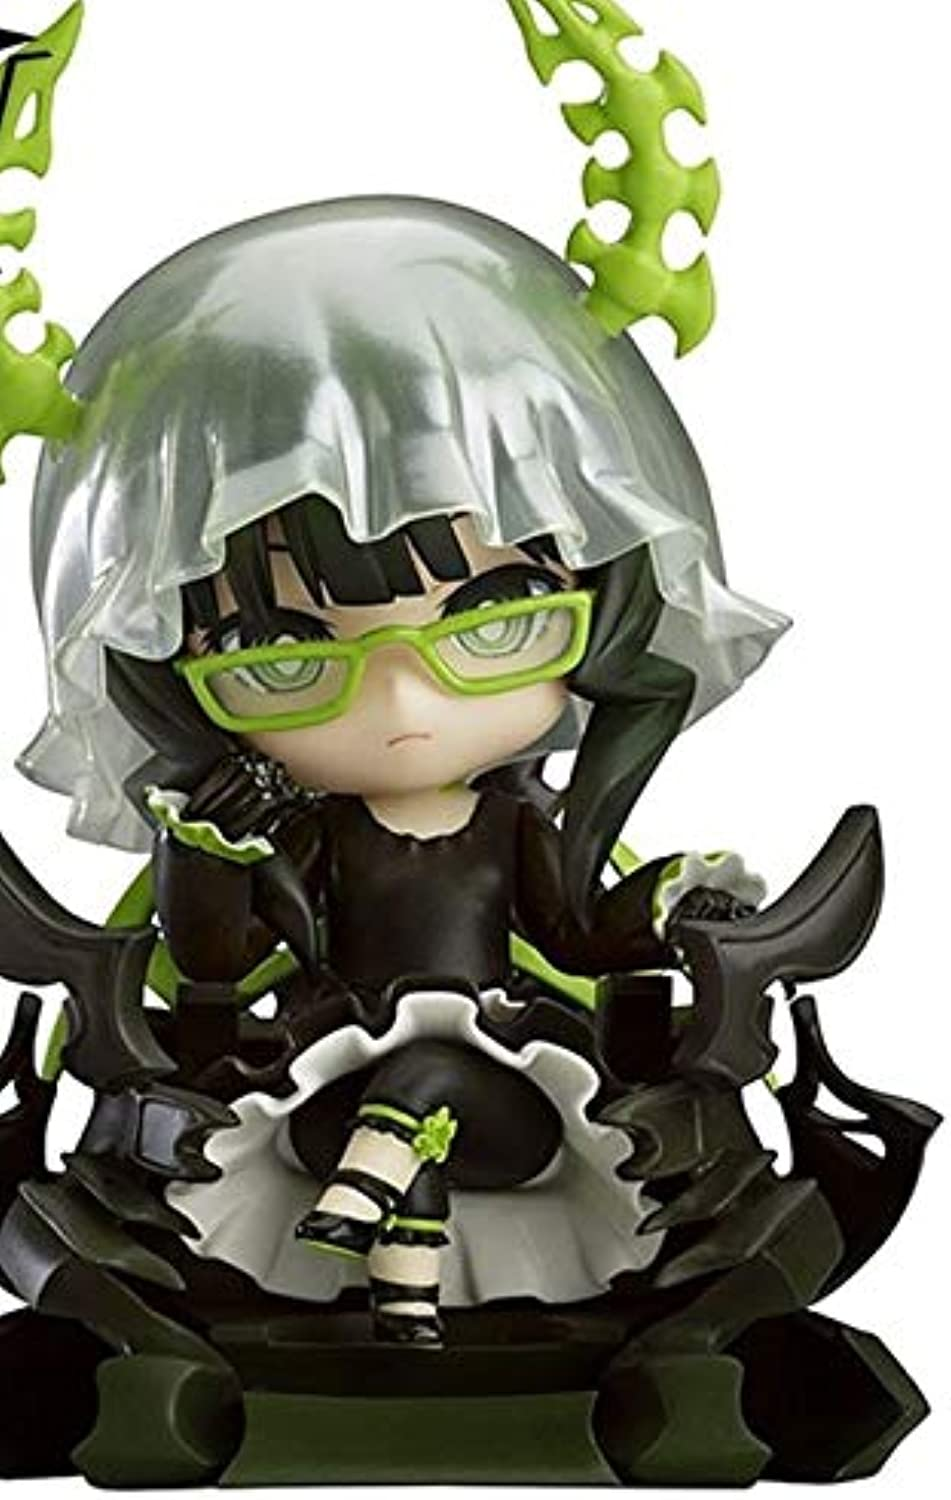 Allegro Huyer Good Smile Cute 4  Black Rock Shooter gold Saw Action Figure Red Devil Figure Model Exchangeable Parts Toy (292)